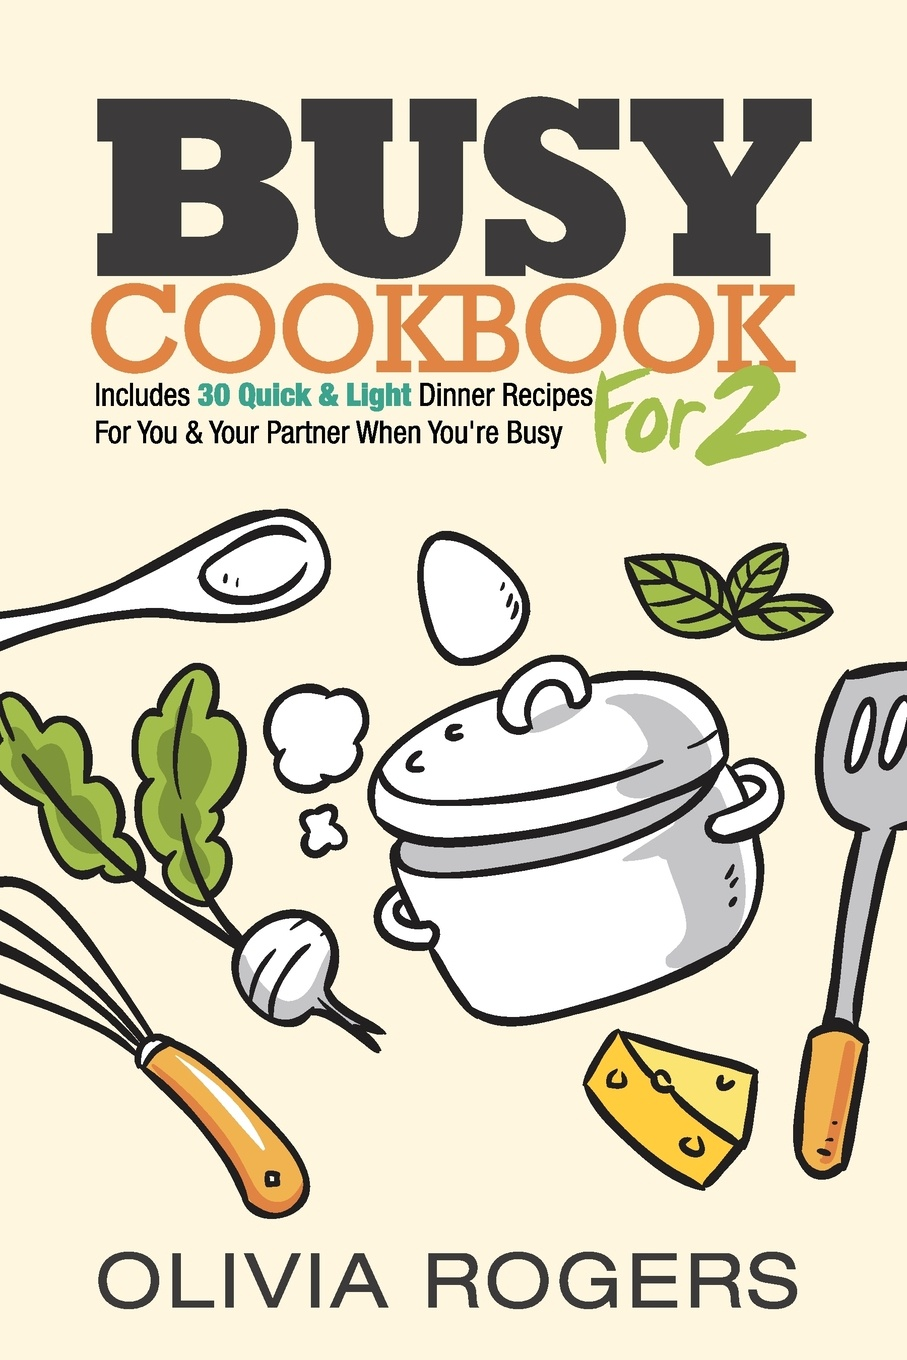 Olivia Rogers Busy Cookbook for 2. Includes 30 Quick & Light Dinner Recipes for You & Your Partner When You're Busy цены онлайн